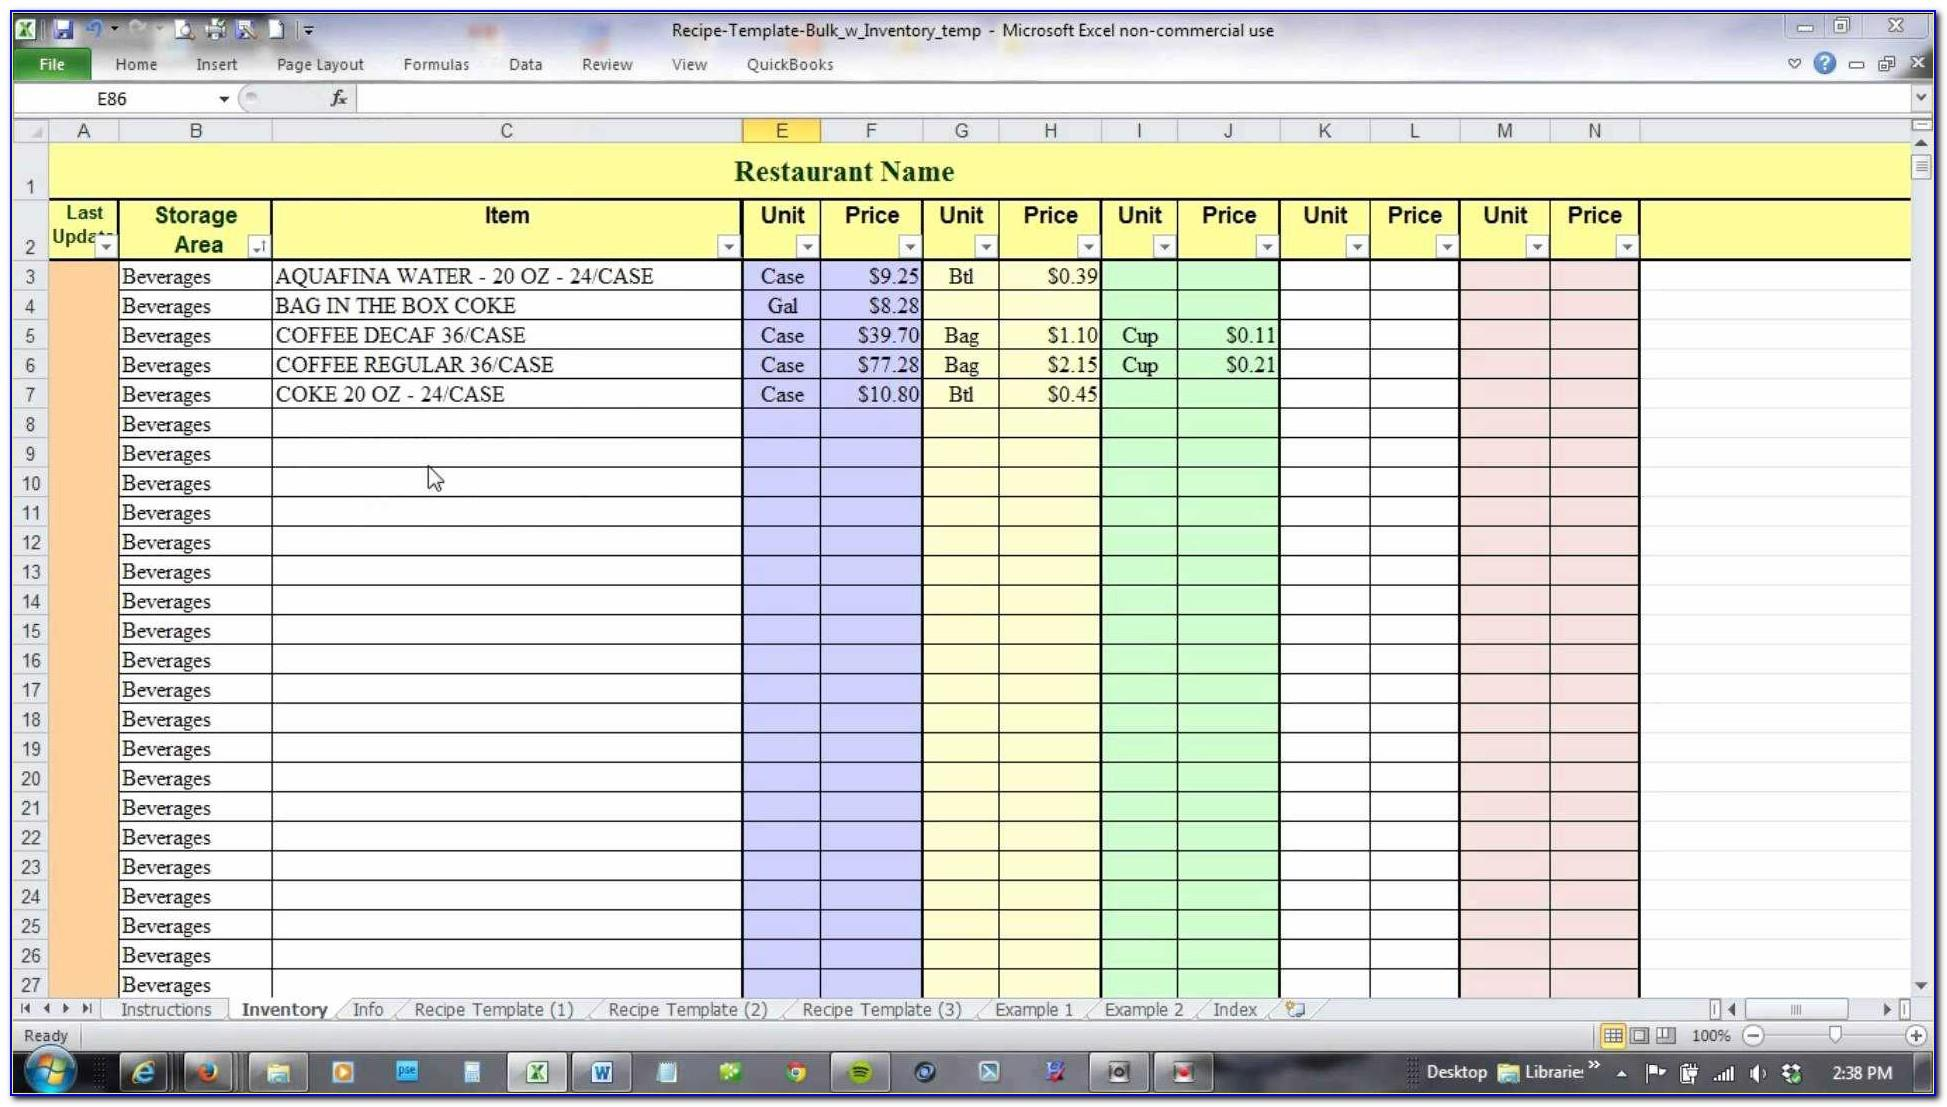 Fifo Inventory Tracking Excel Template